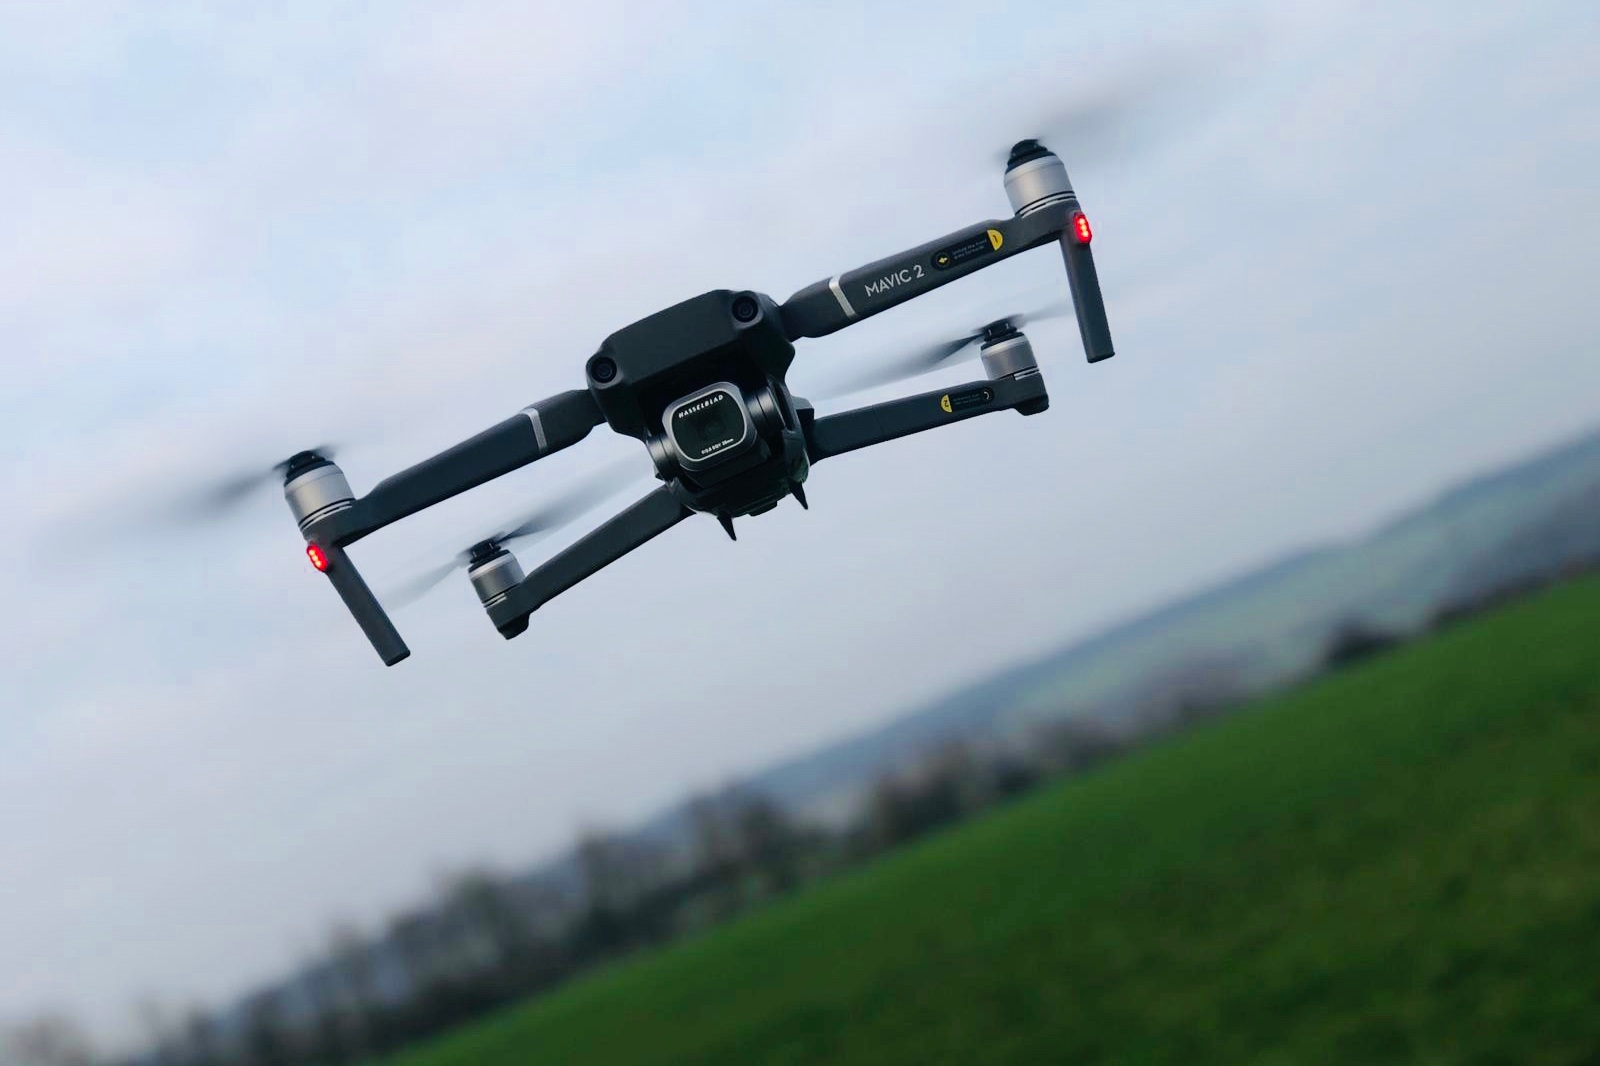 The Latest Technology - We will help you get that perfect shot or video with our state of the art drone technology